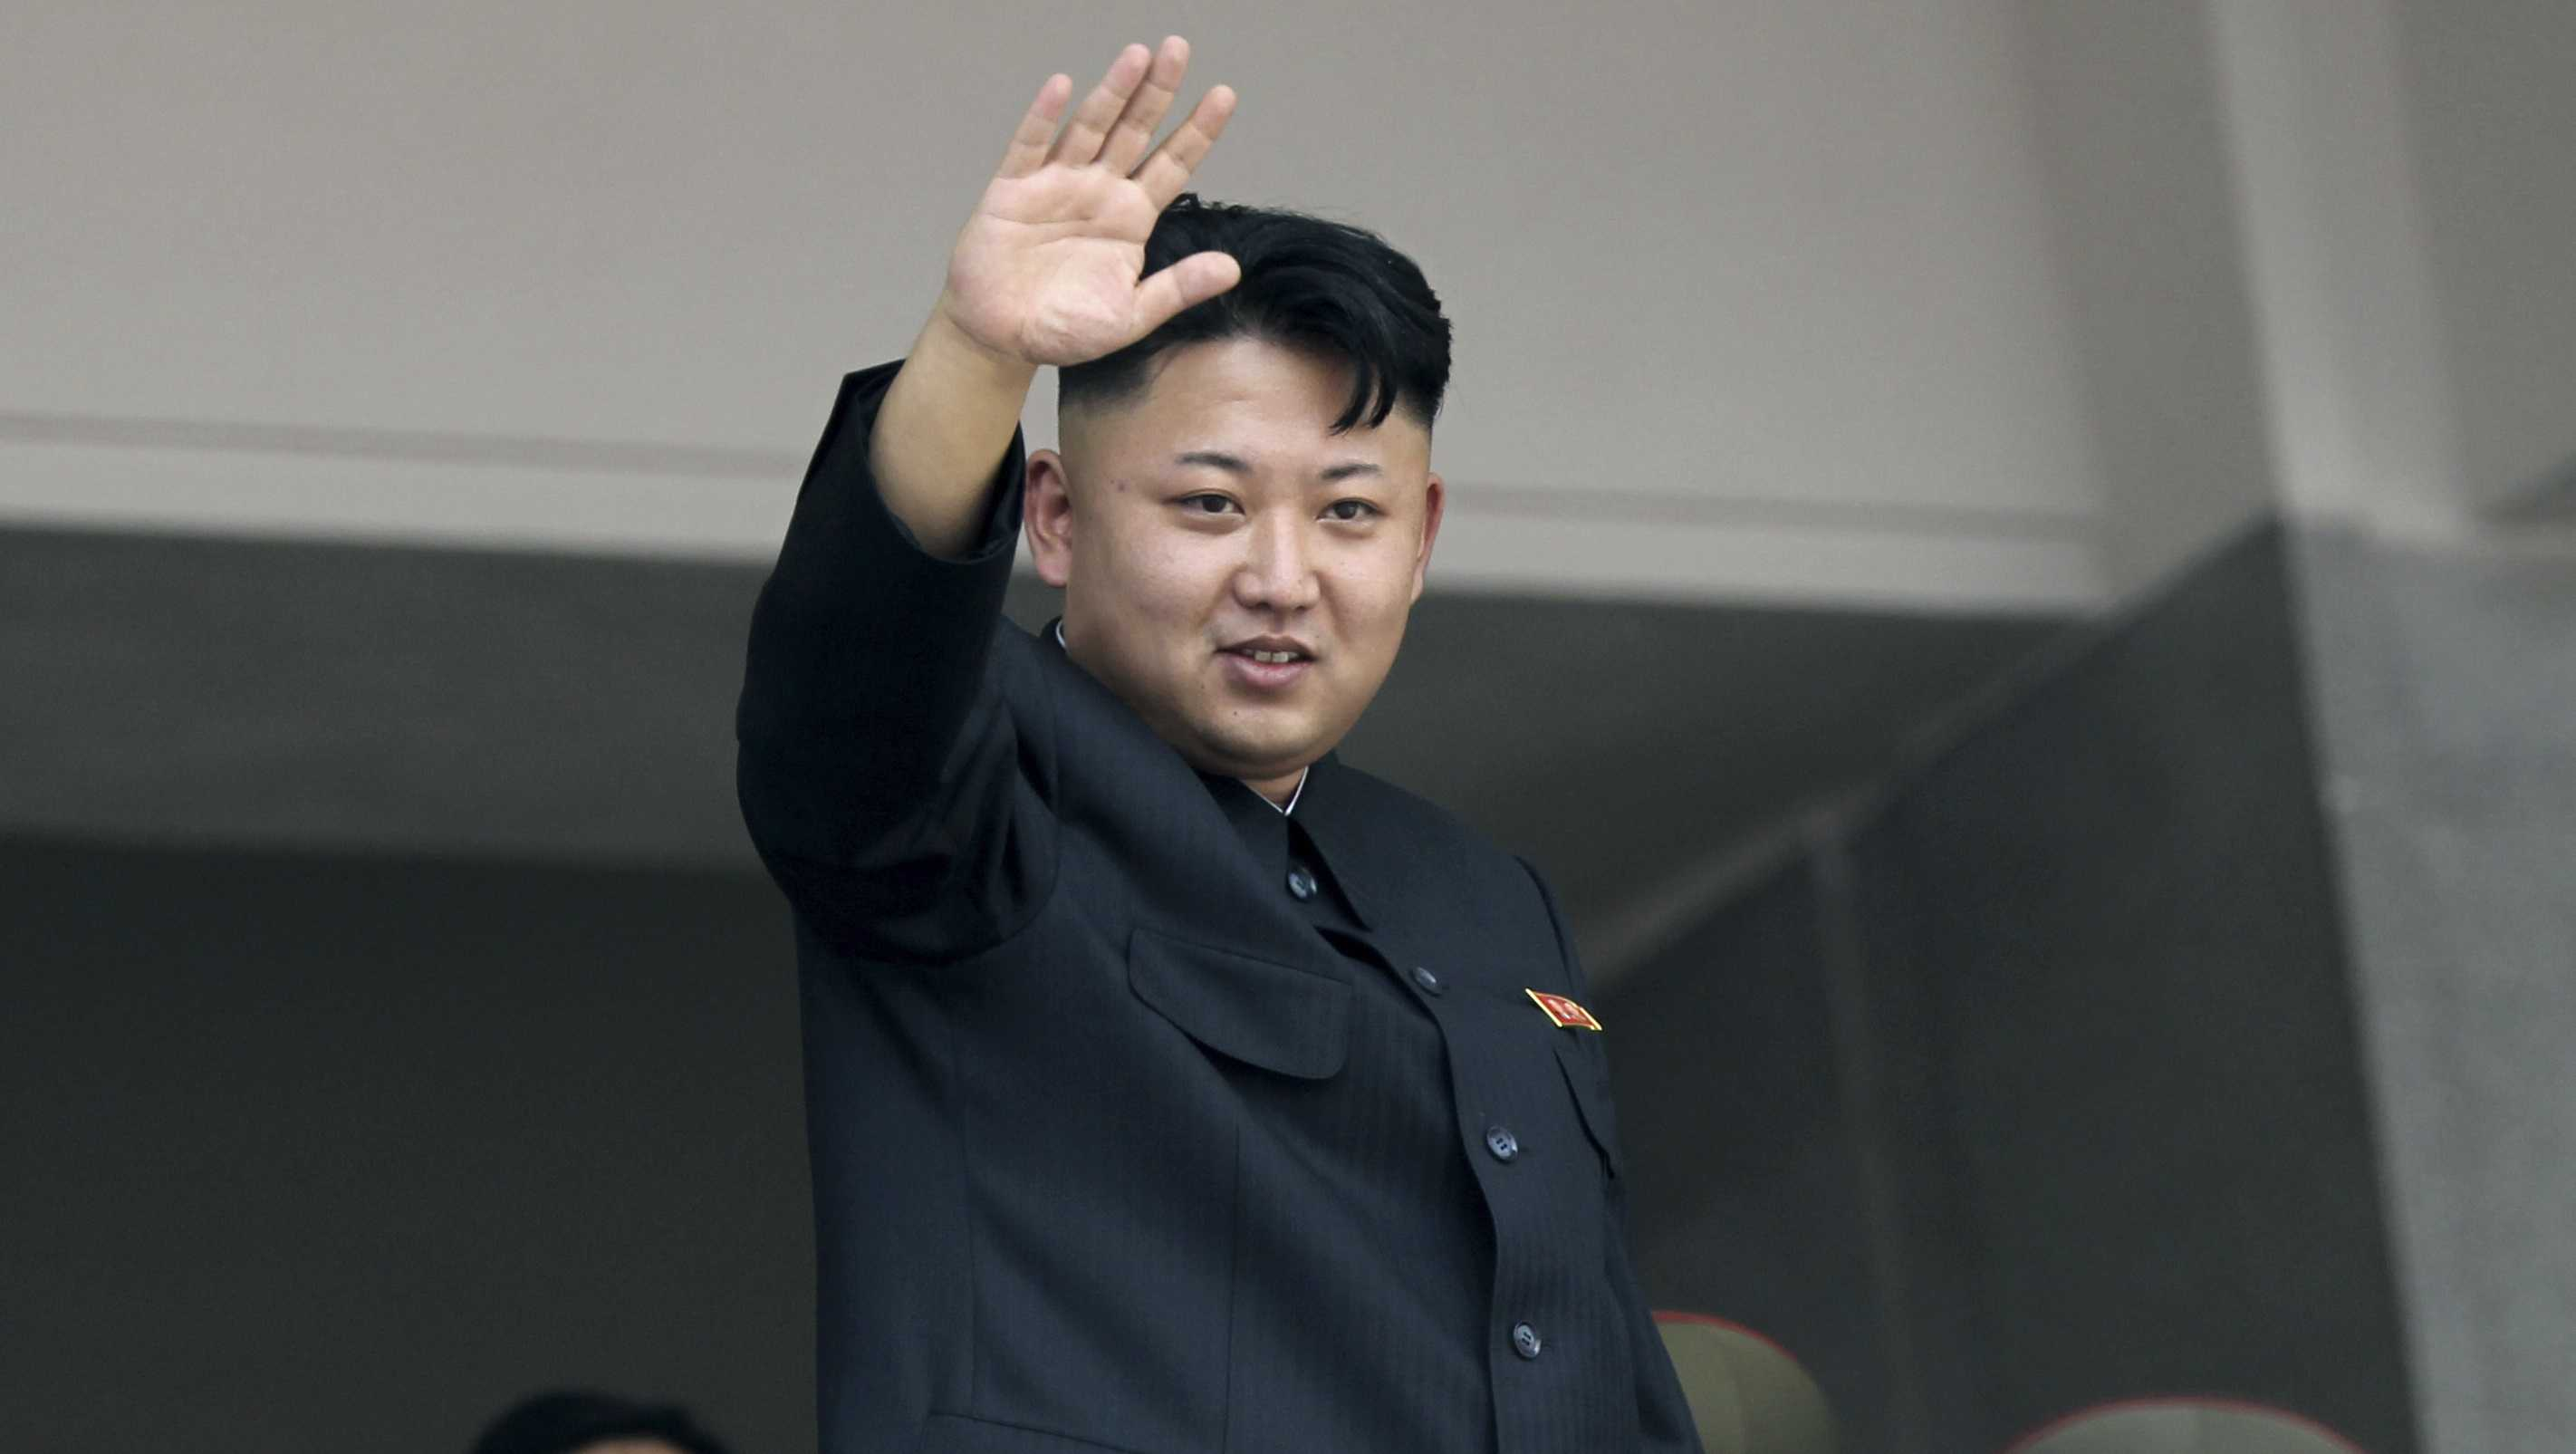 In this July 27, 2013, file photo, North Korea's leader Kim Jong Un waves to spectators and participants during a mass military parade celebrating the 60th anniversary of the Korean War armistice in Pyongyang, North Korea.